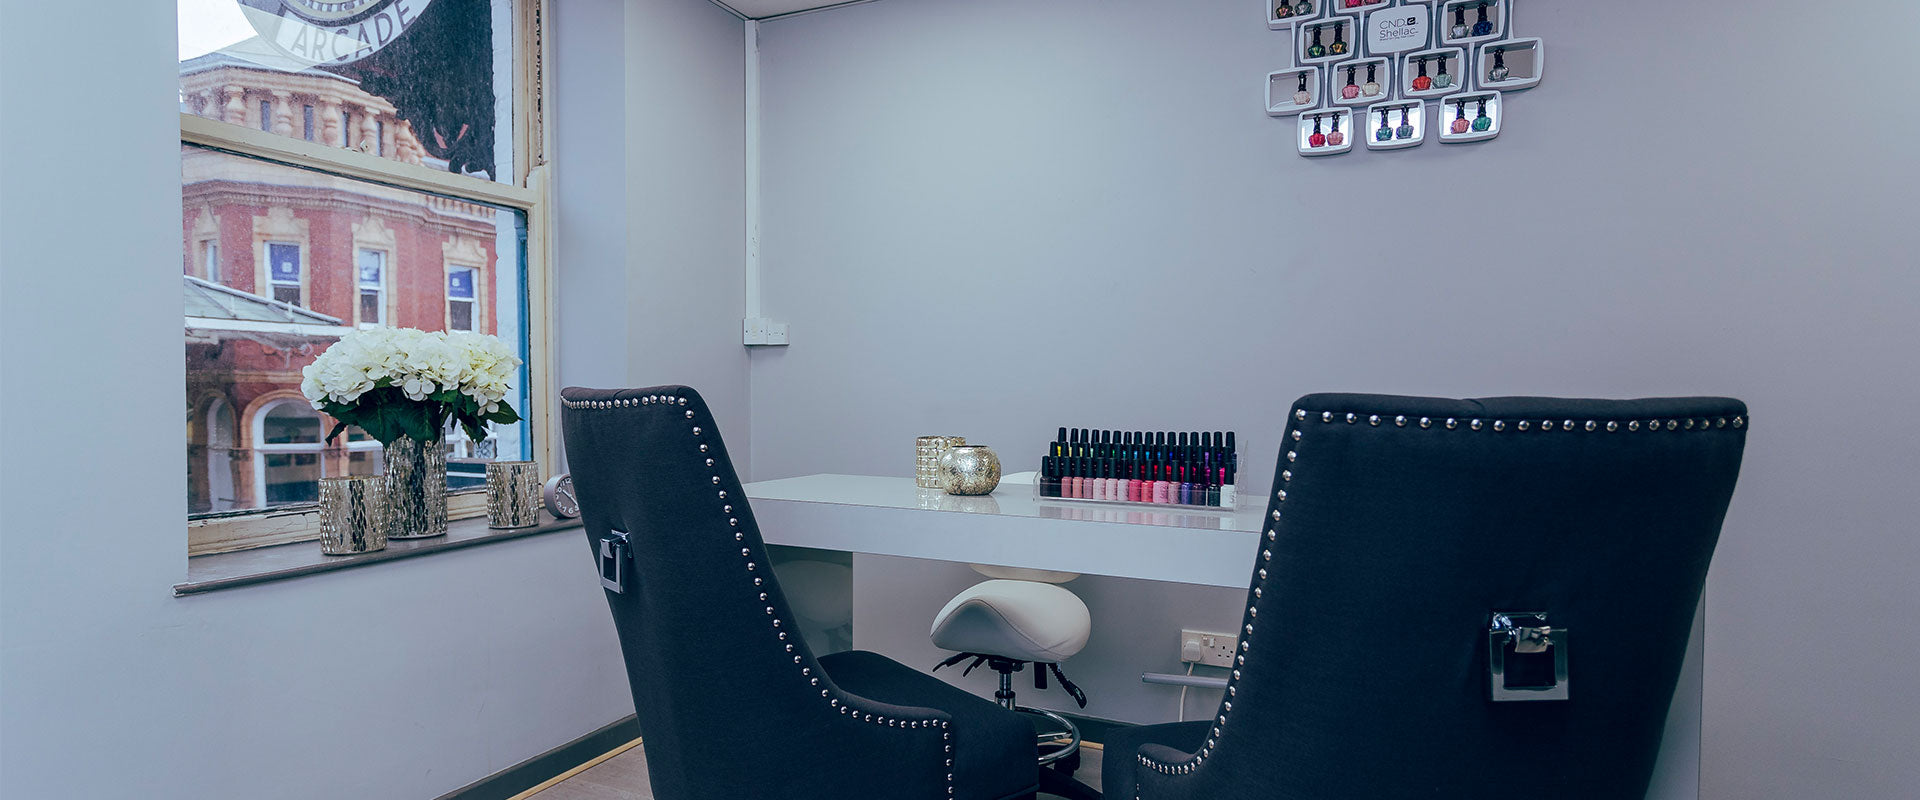 Facials, Microdermabrasion and Aesthetics at Allertons Leeds City Centre